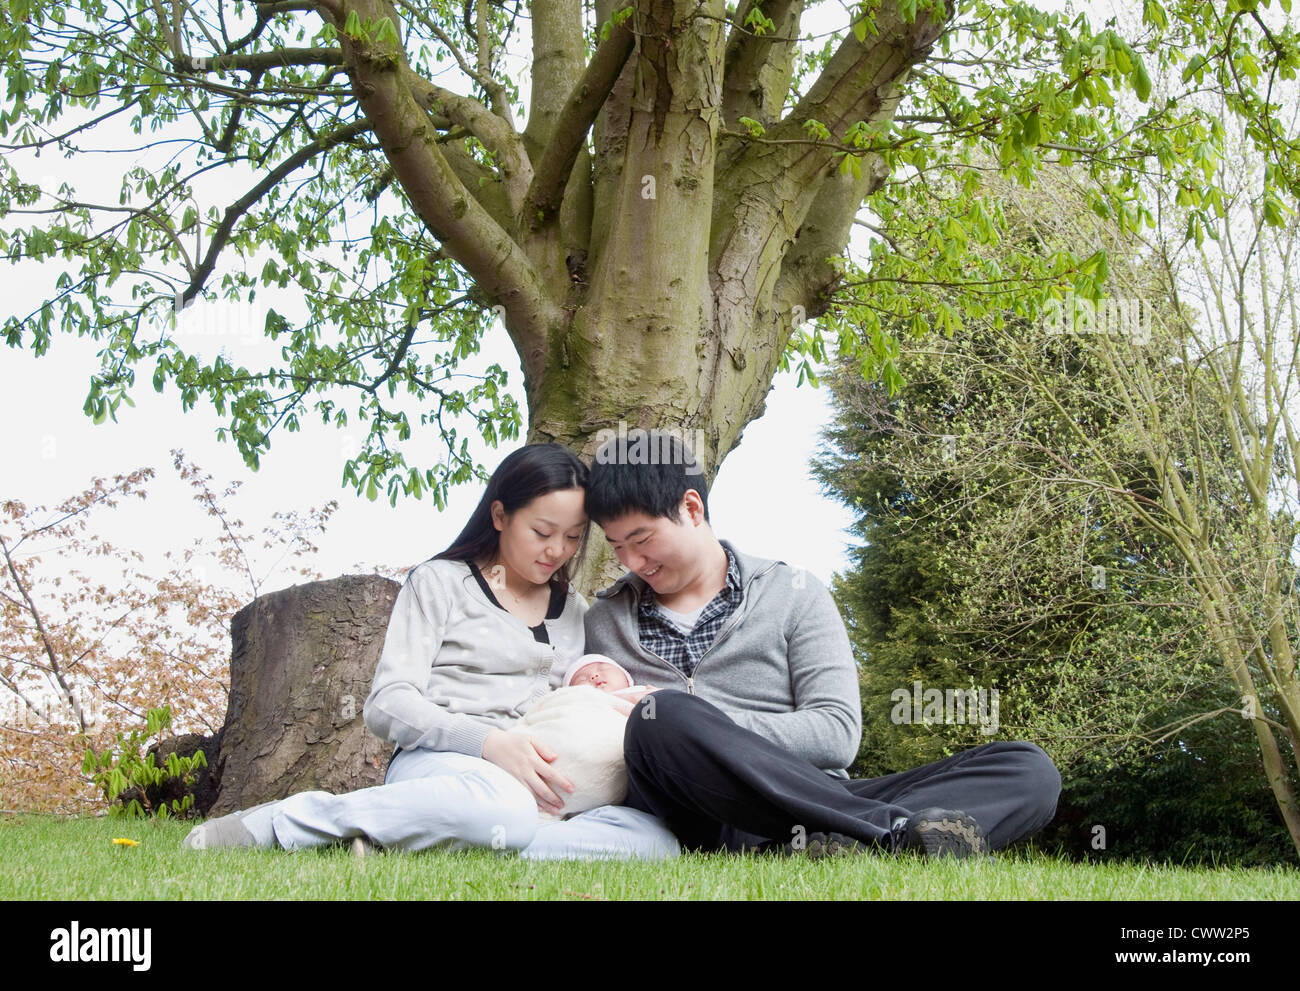 Parents holding sleeping baby in park - Stock Image